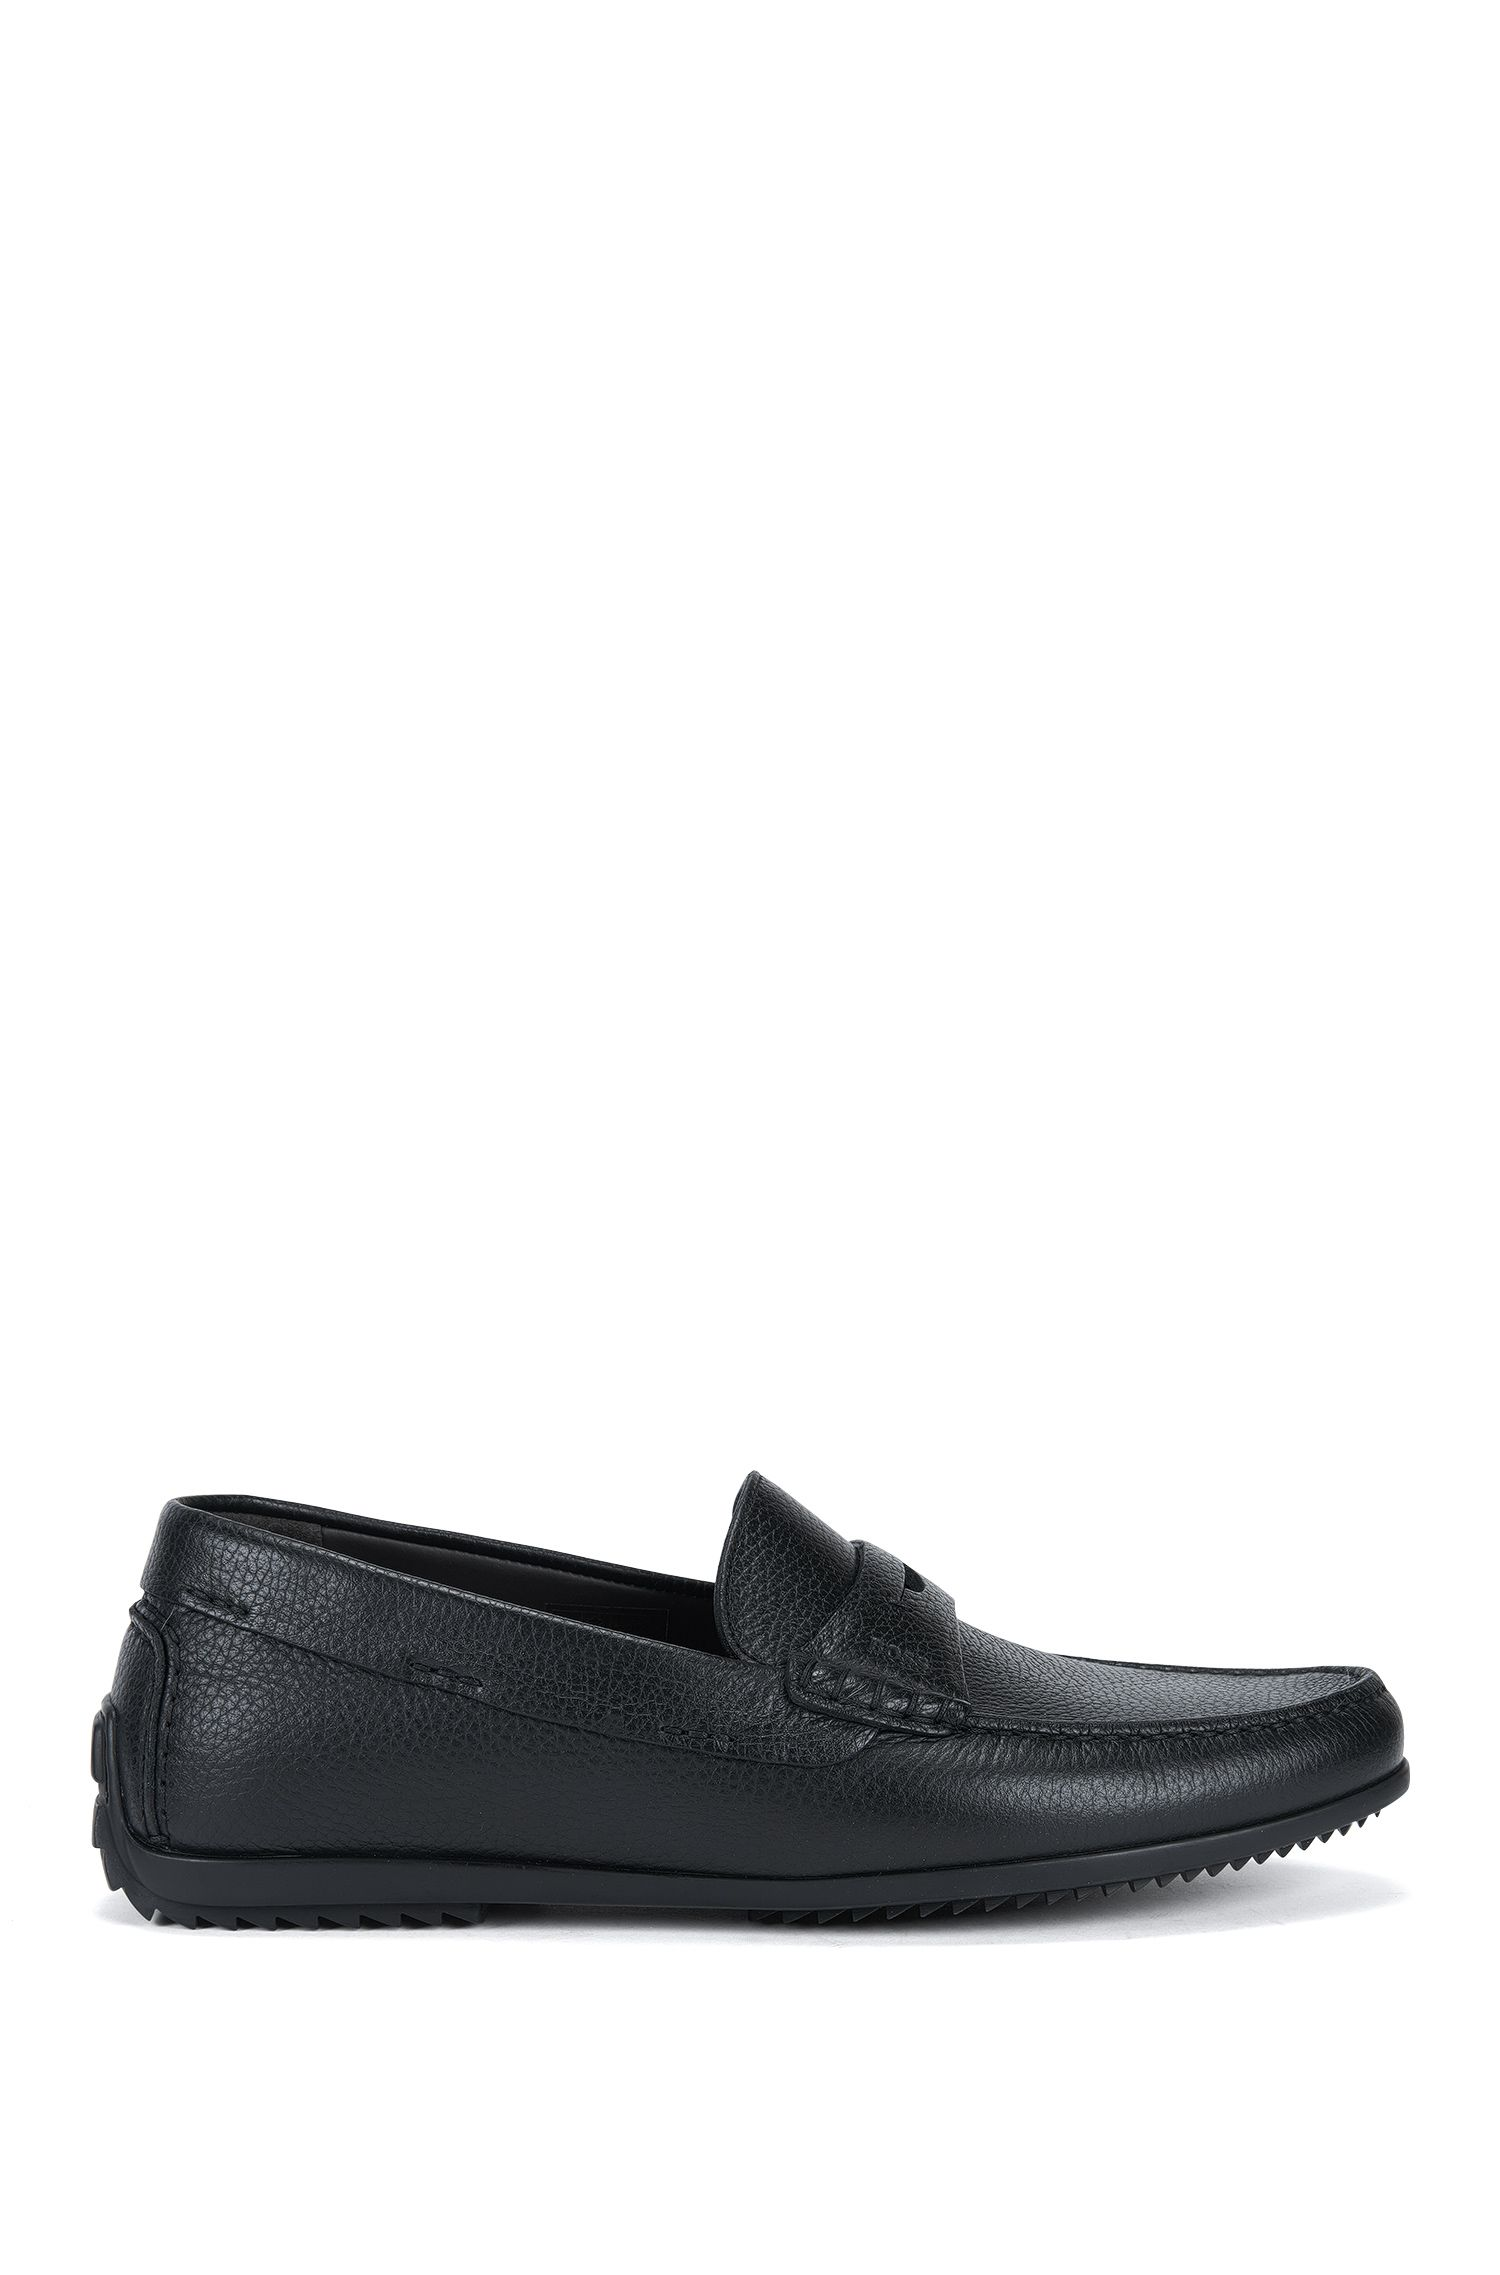 Leather moccasin shoes with driver sole